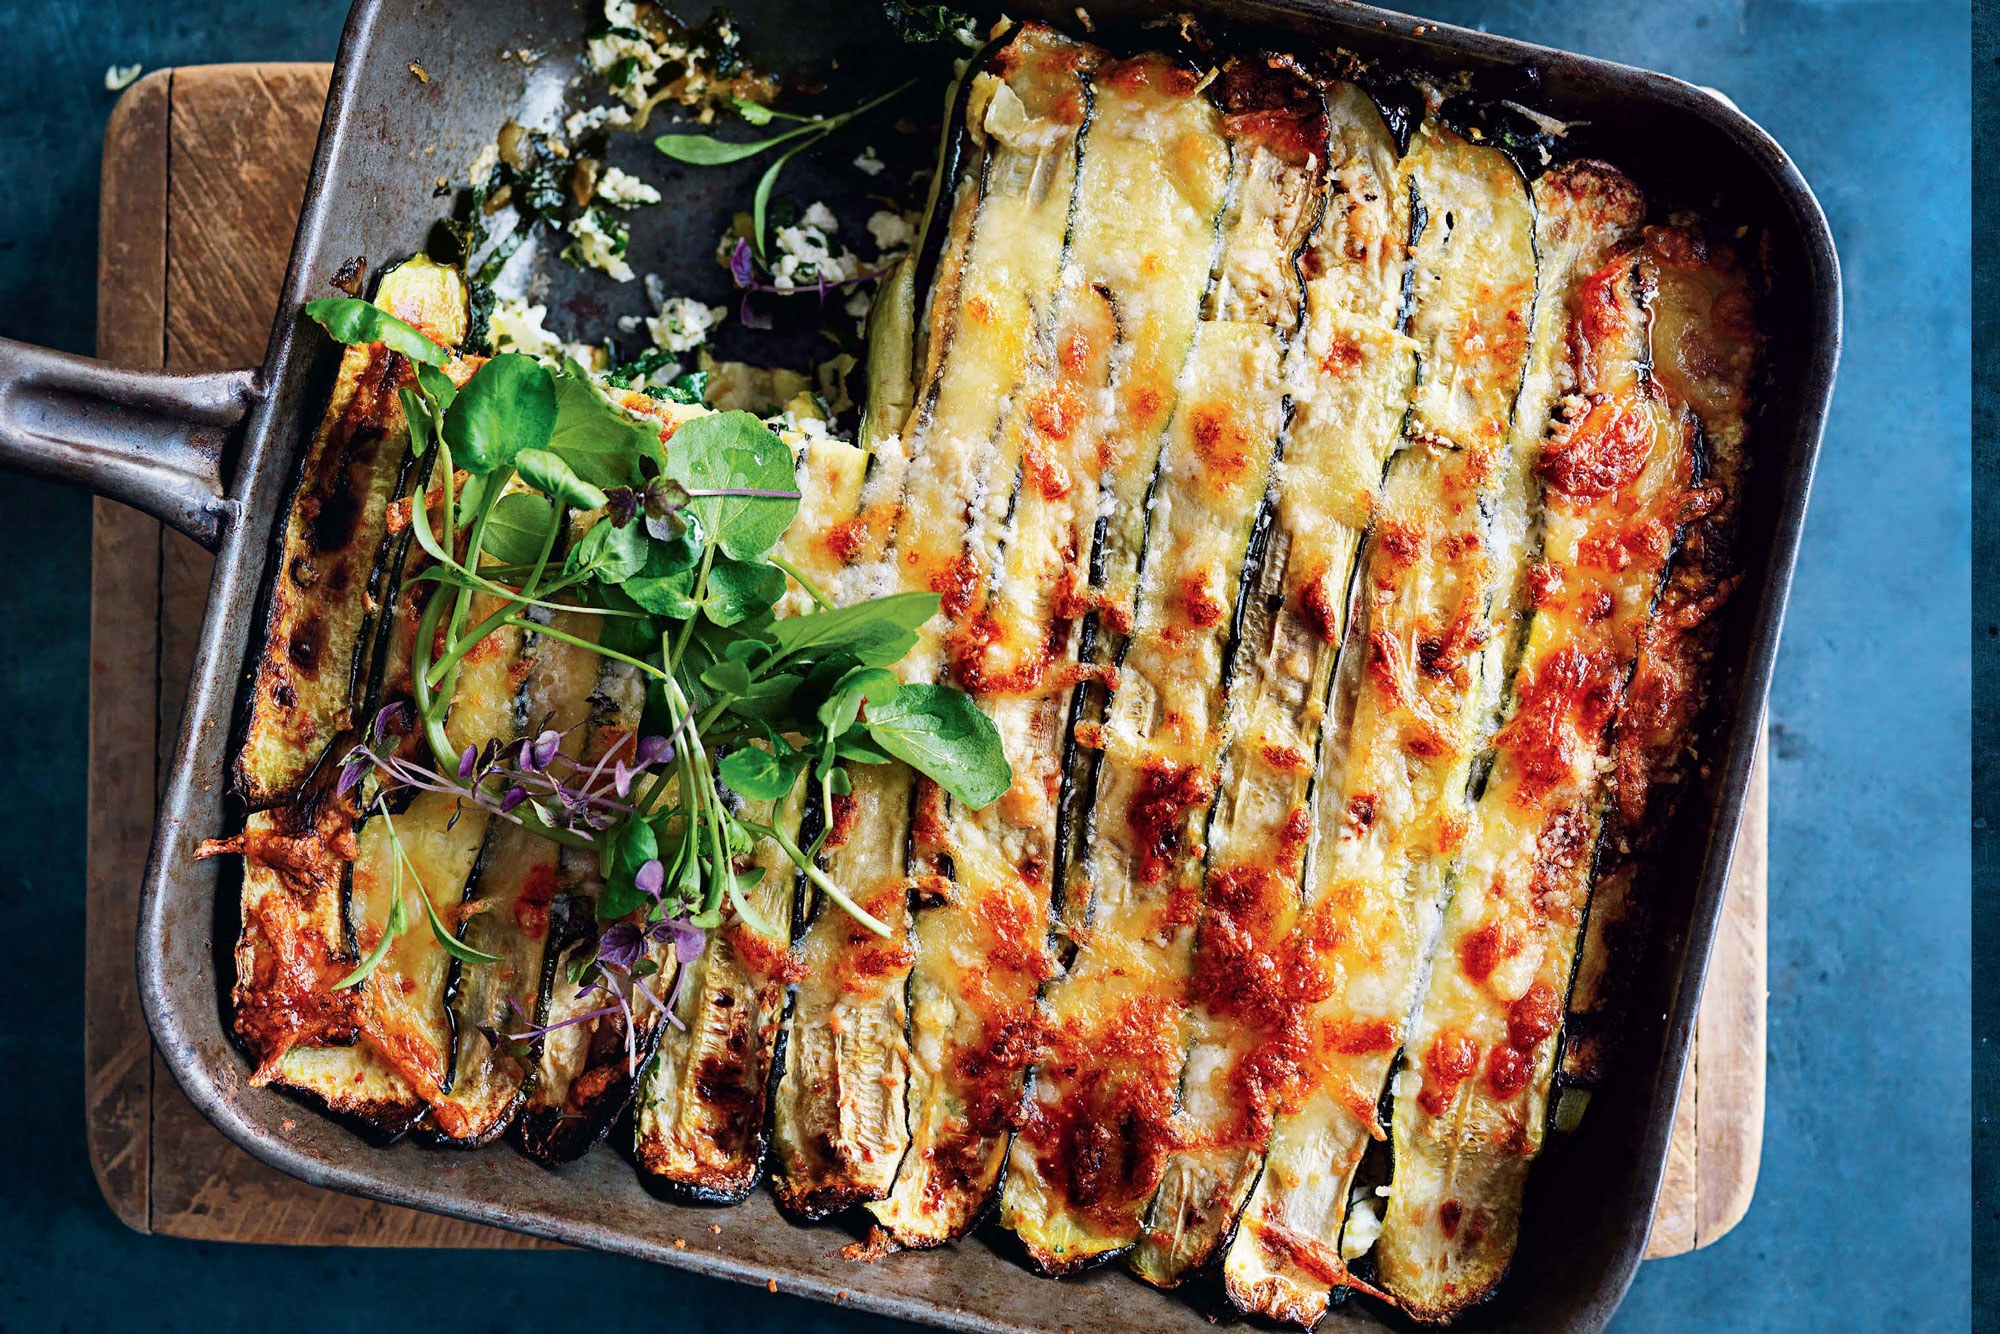 Photo Credit . Just as good as (if not better than) the real deal, this vegan lasagna highlights the nutritious and delicious zucchini. Light enough for a summer night, but still hearty enough for the colder seasons, this lasagna will become your new favorite recipe.